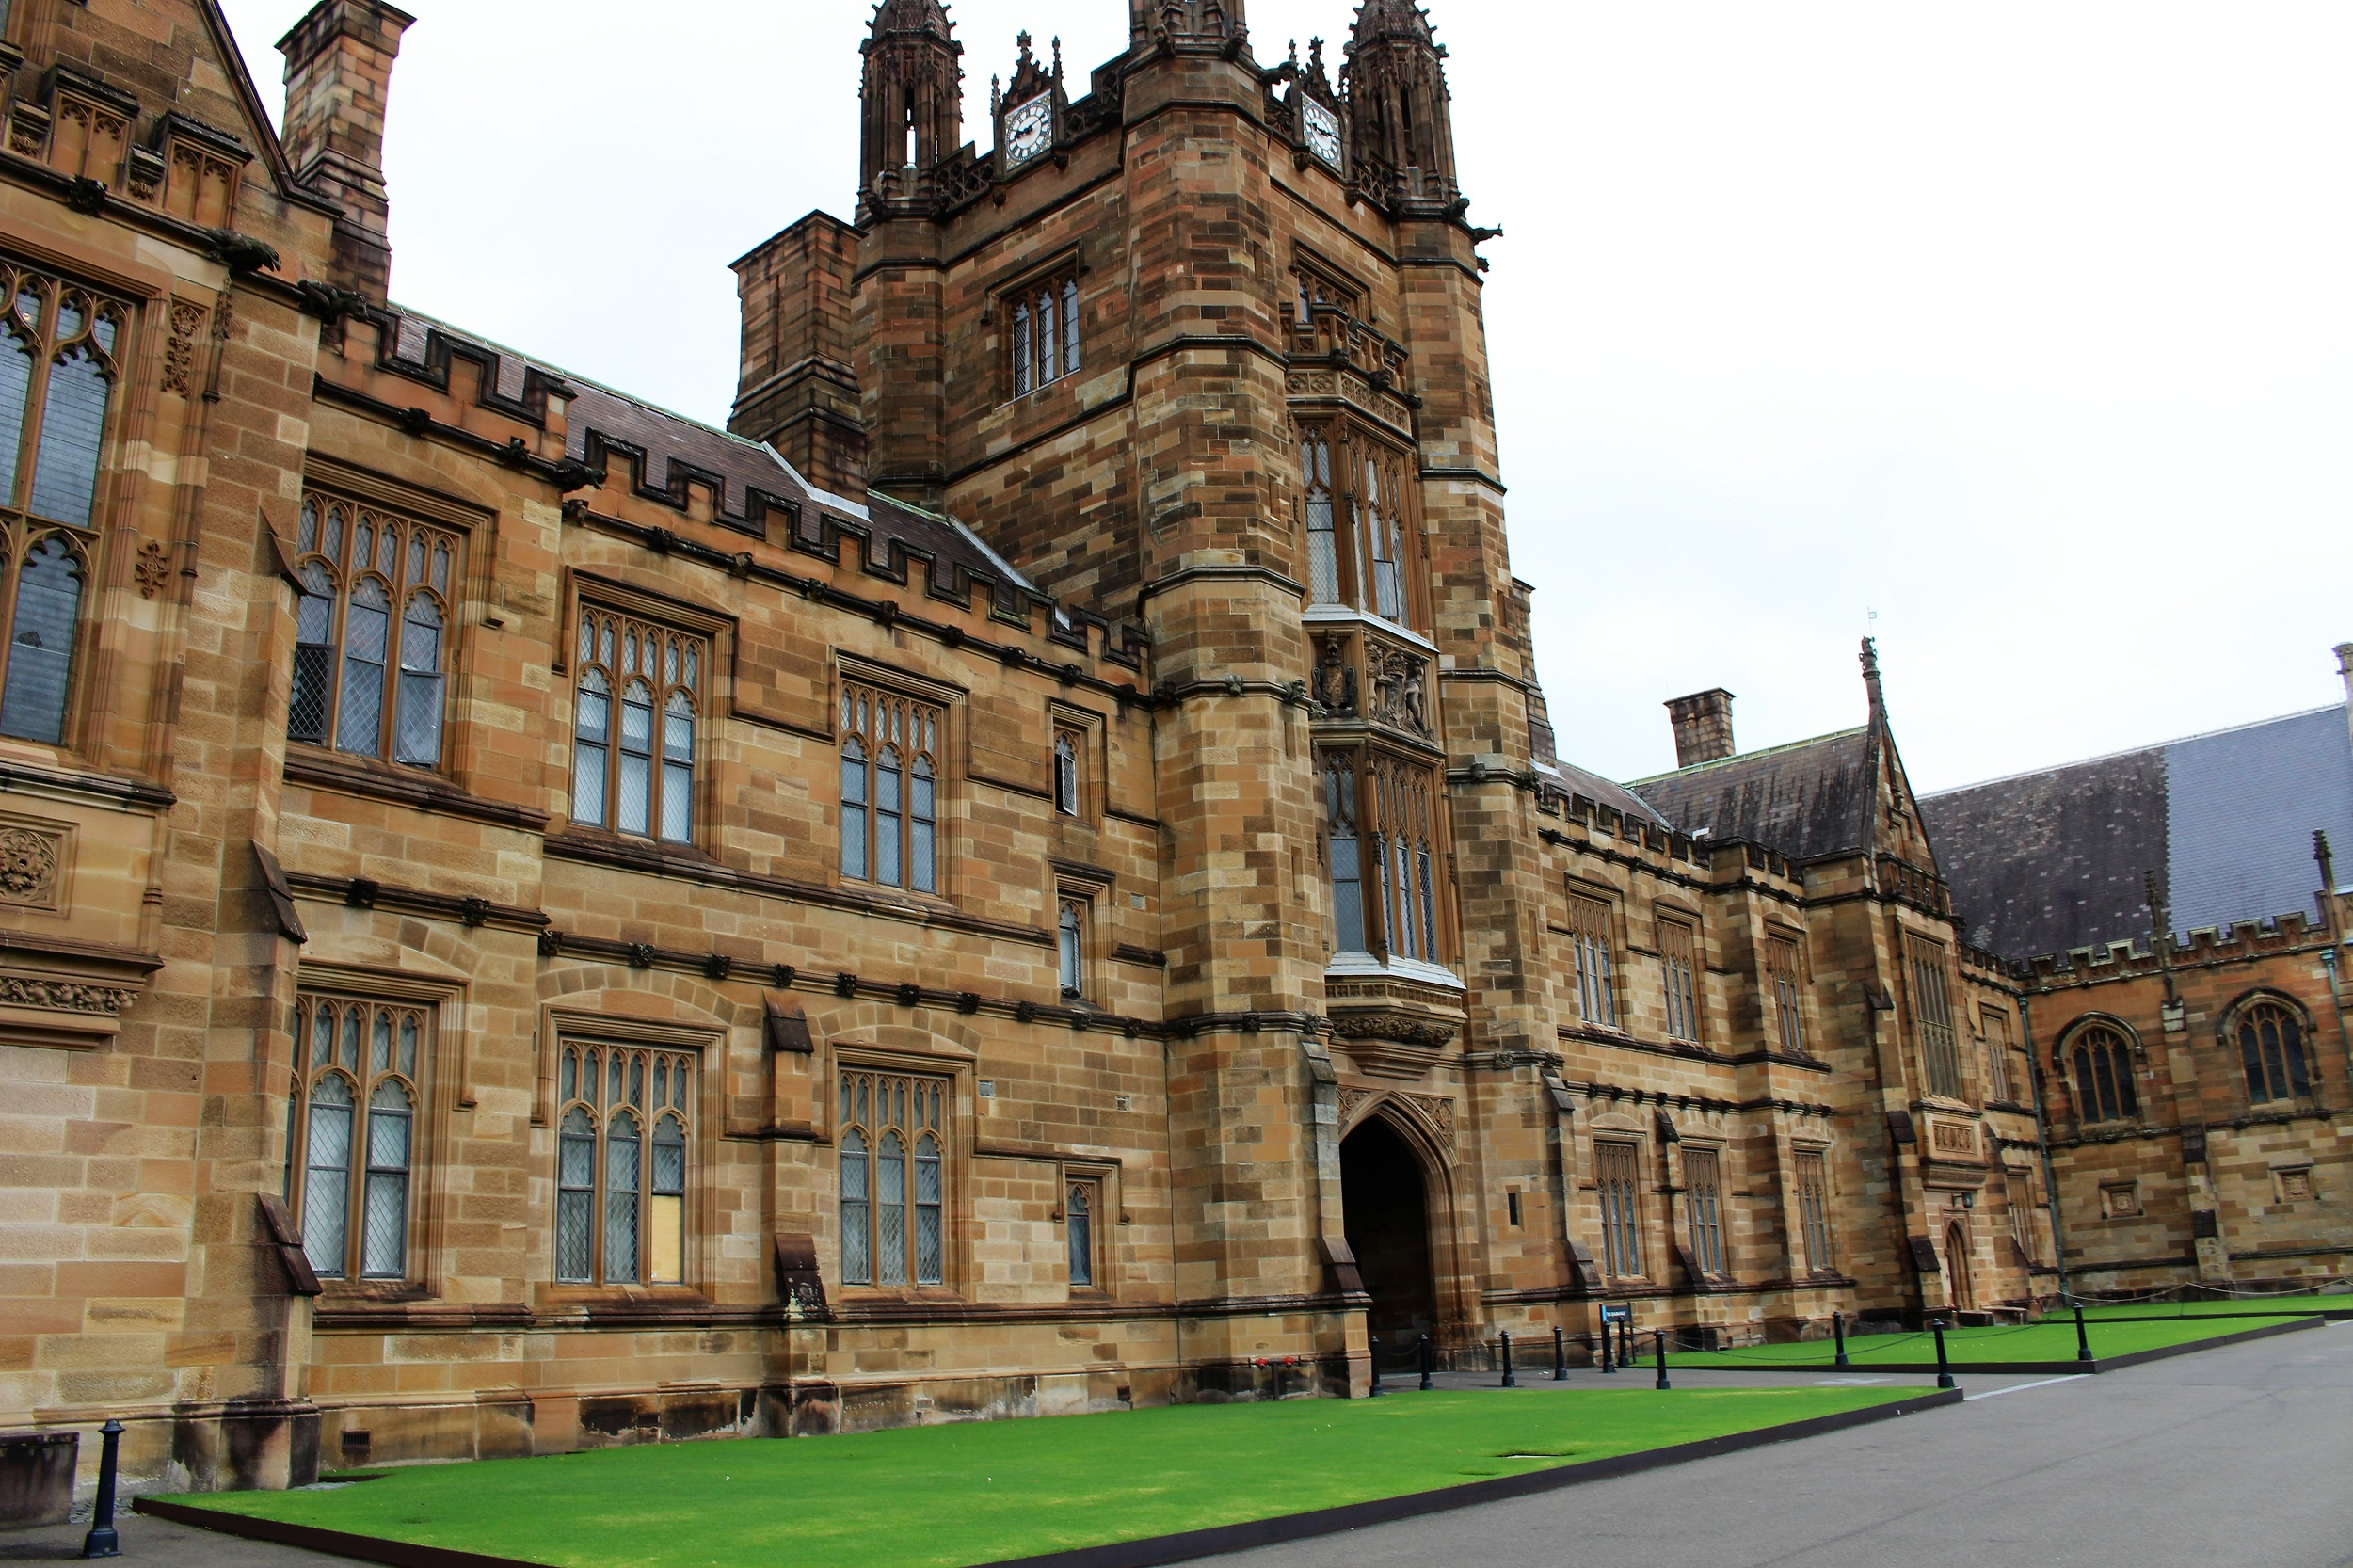 Sorry but Harry Potter was not filmed here - entrance to the Quadrangle at Sydney University